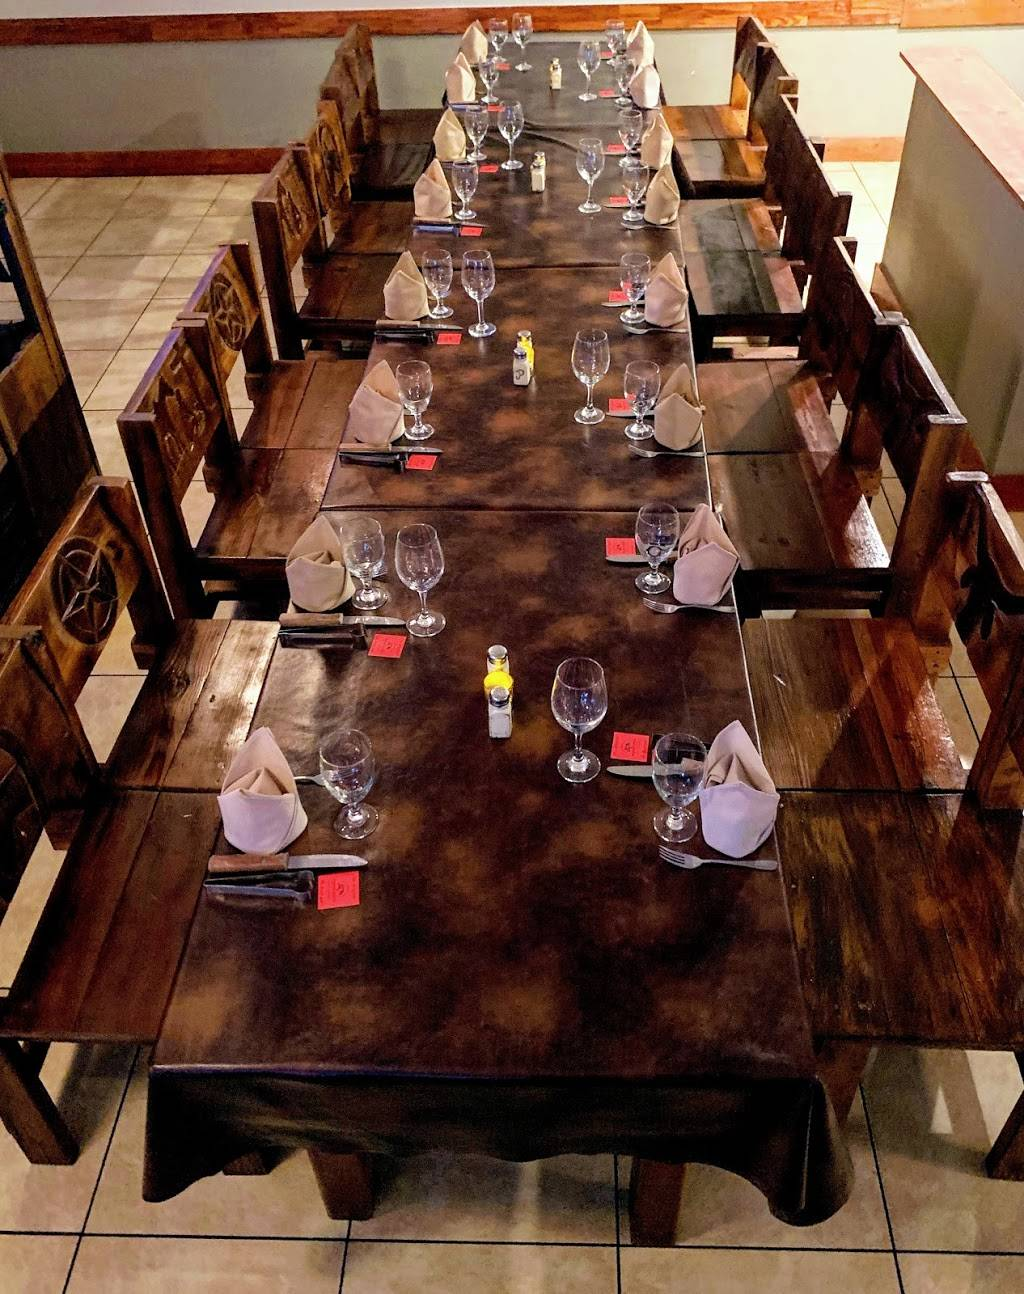 Fazenda Gaúcha - restaurant  | Photo 1 of 10 | Address: 405 E Pipeline Rd, Bedford, TX 76022, USA | Phone: (817) 786-8310